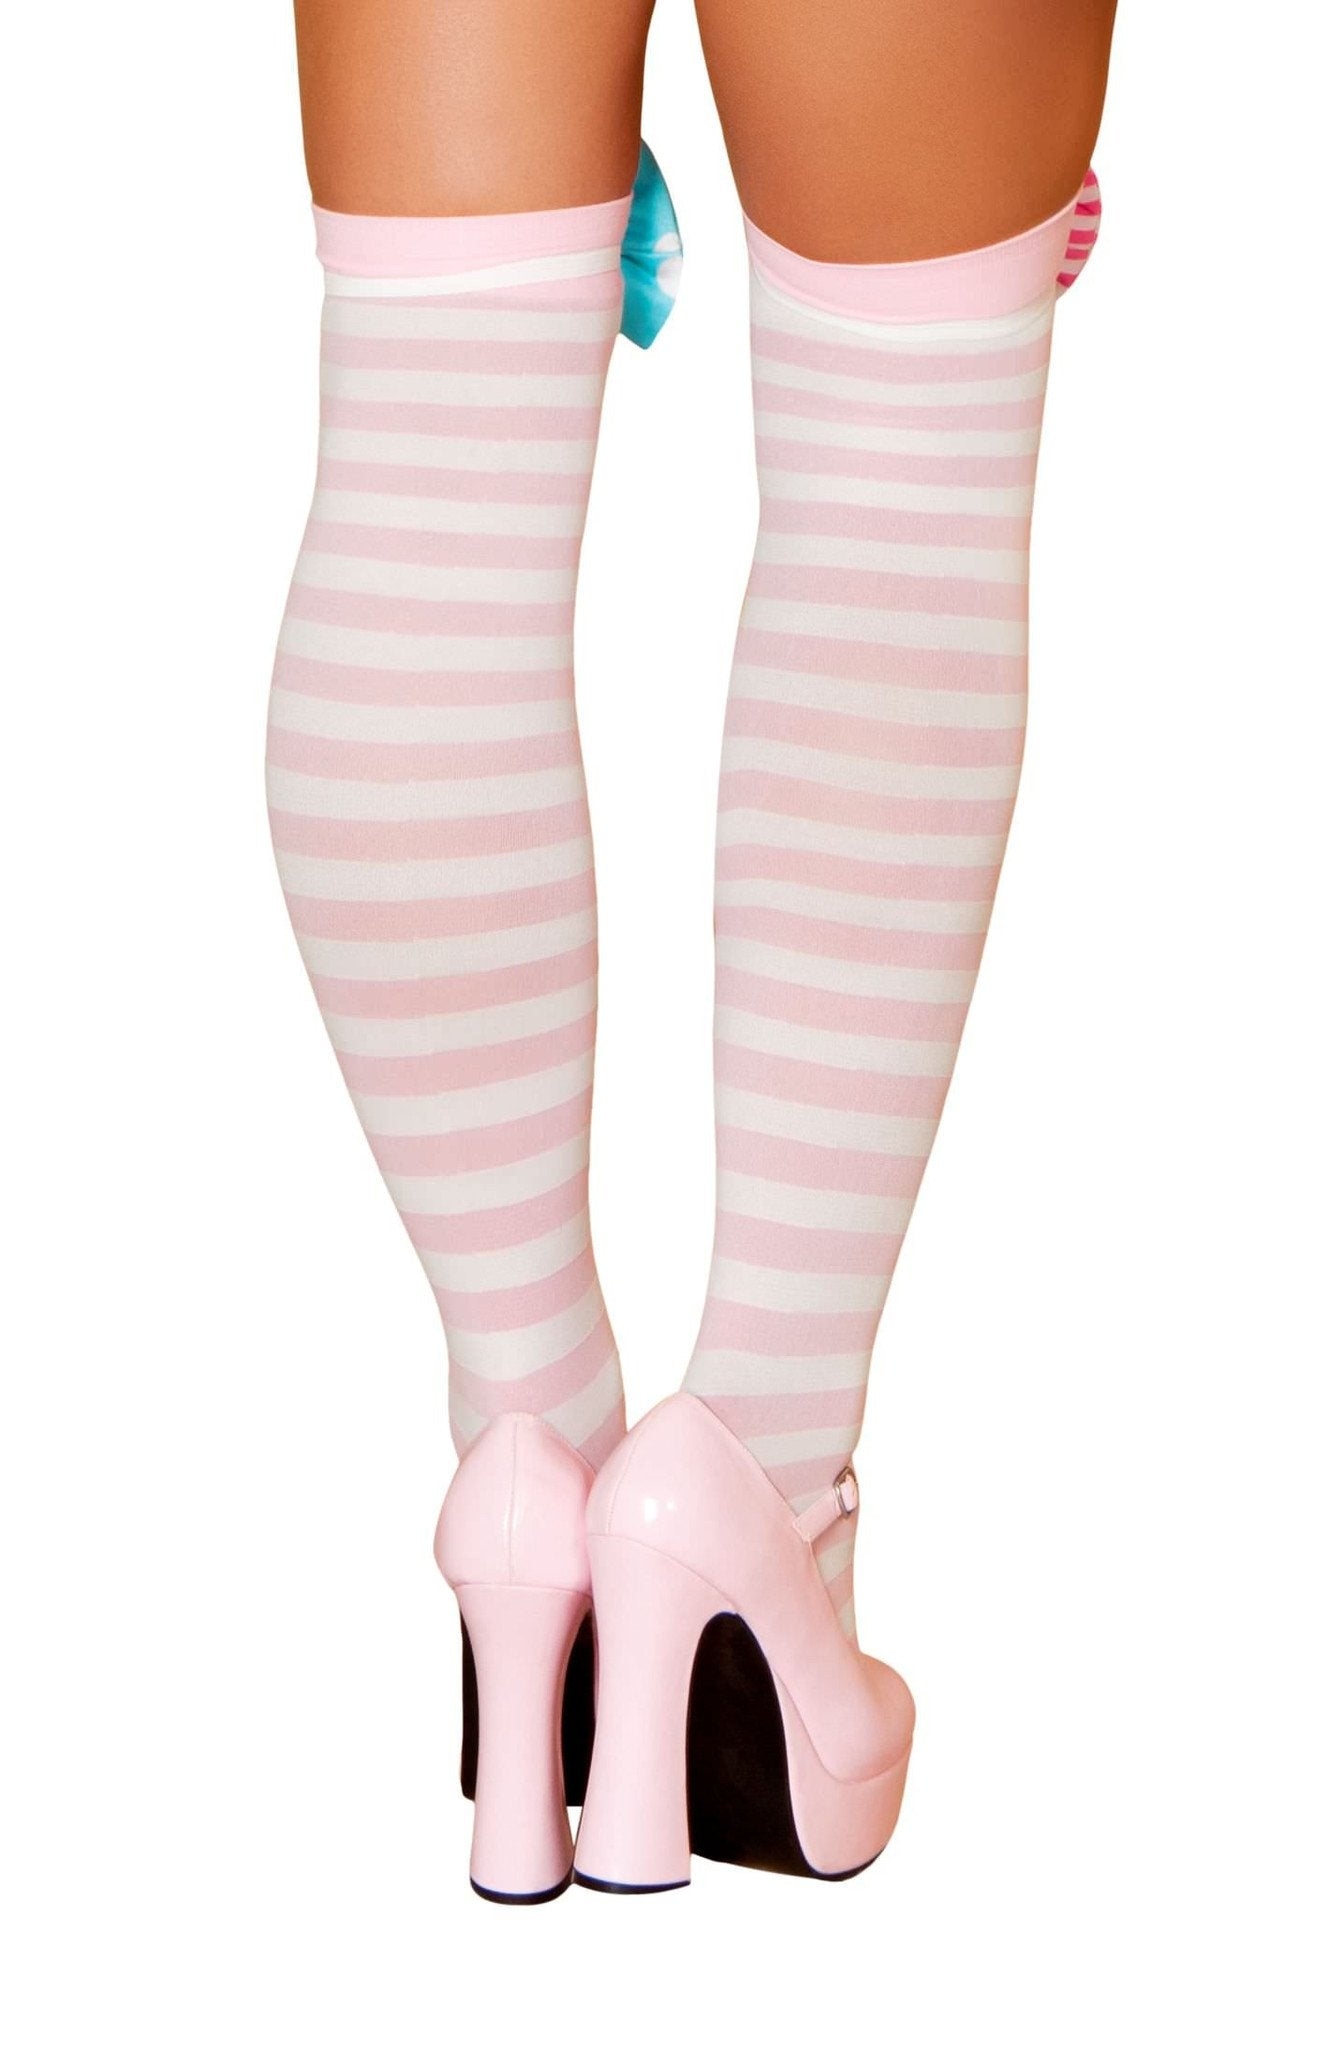 Buy ST4421 Stockings from Rave Fix for $5.99 with Same Day Shipping Designed by Roma Costume ST4421-AS-O/S